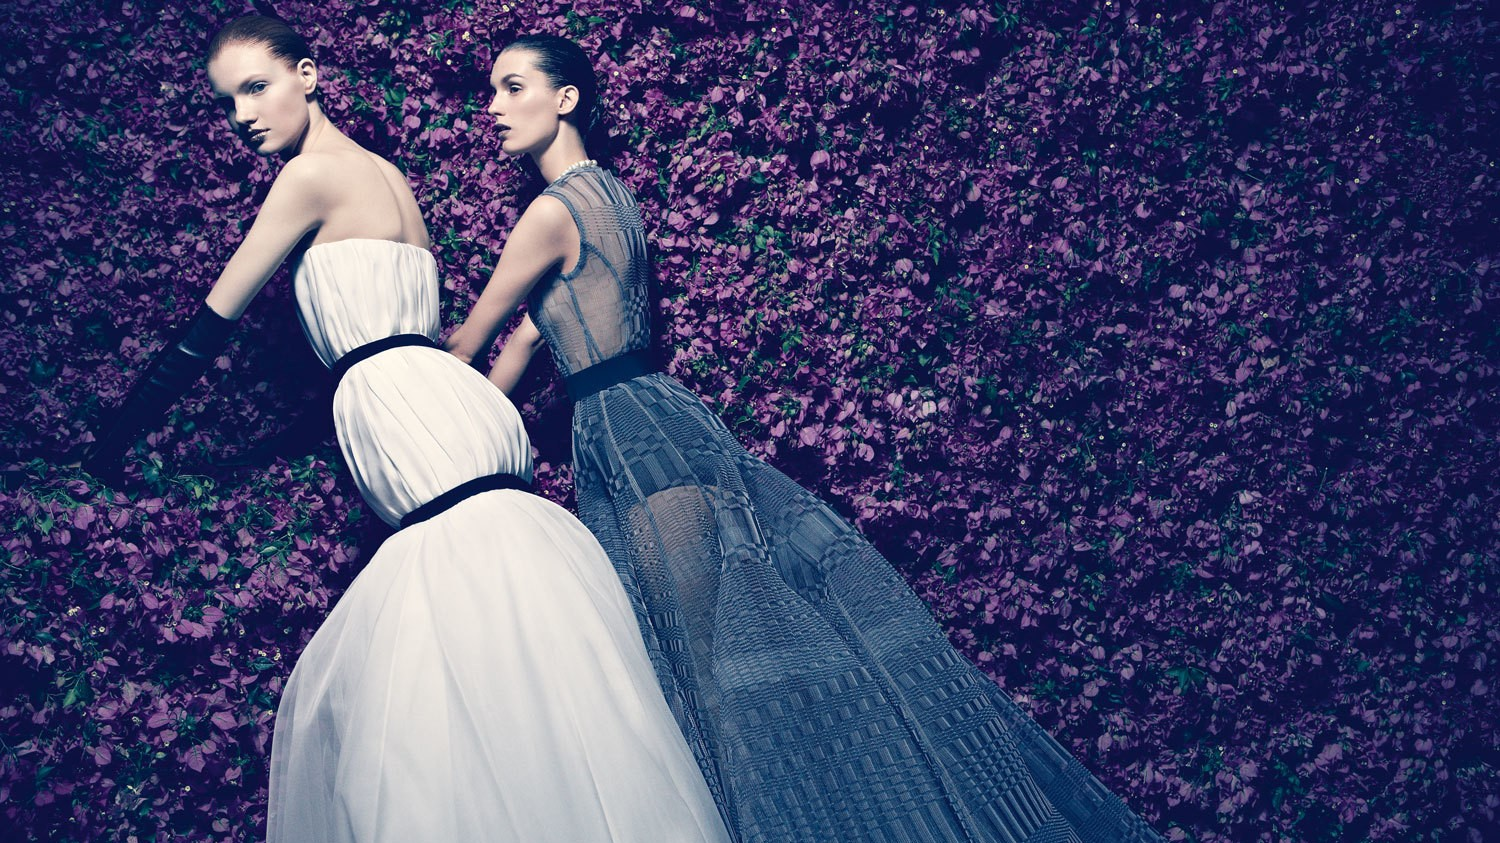 patrick demarchelier shoots dior book